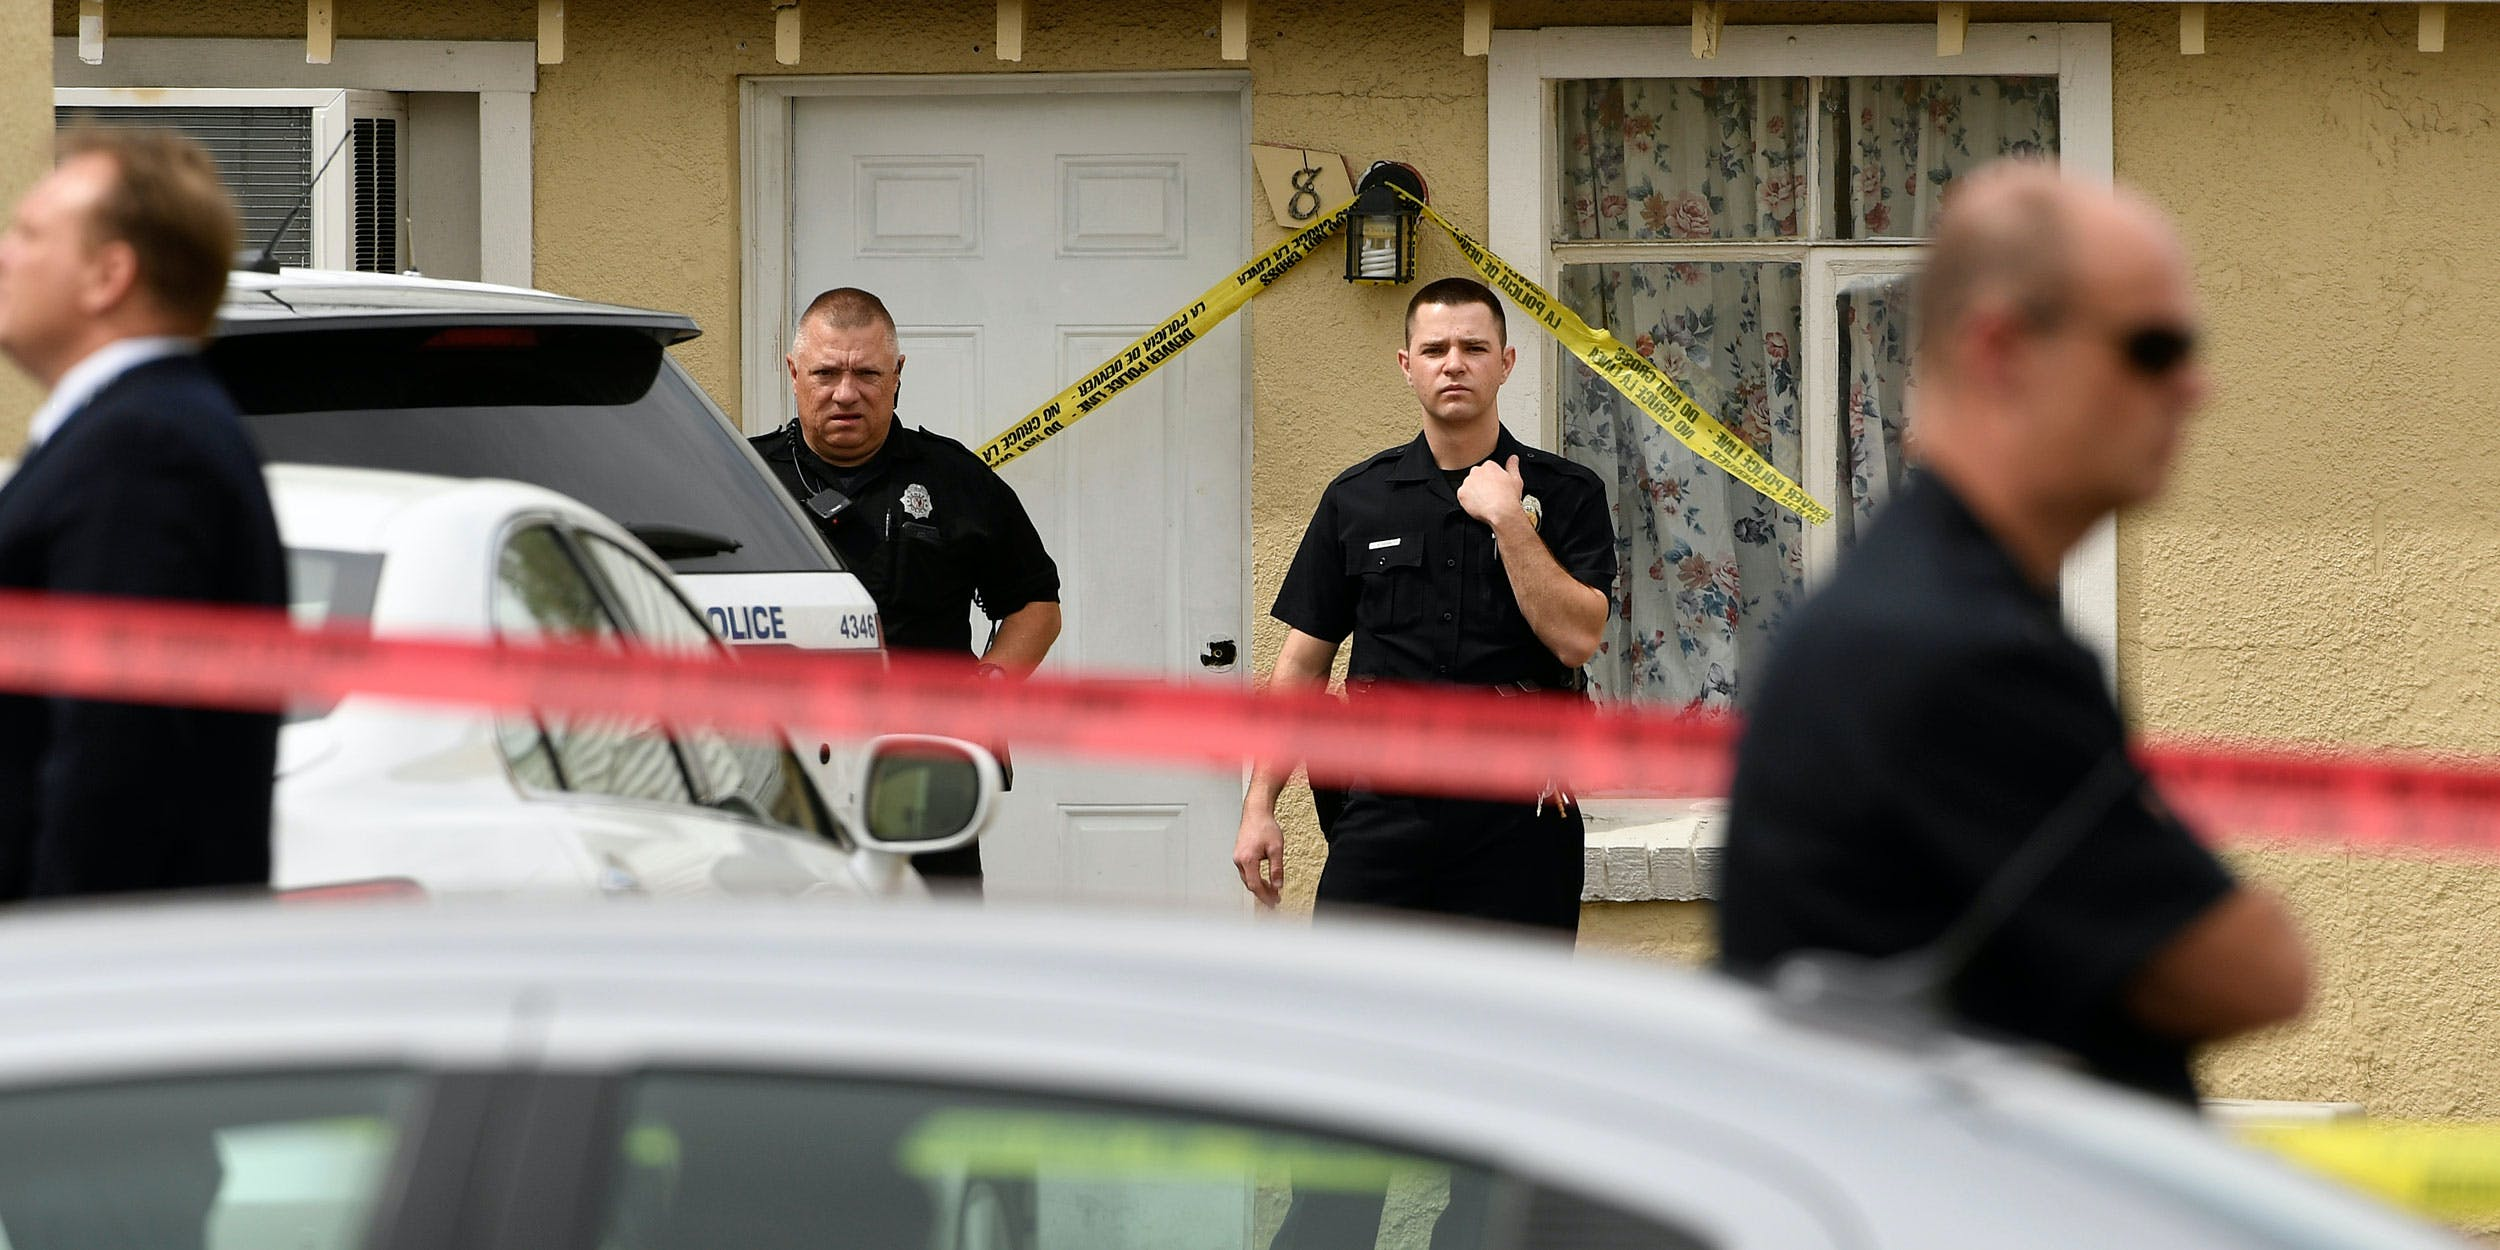 Officers guard a motel at the scene of a shooting in 2016. A new study suggests that police are solving more serious crimes, like this one, in Colorado and Washington since cannabis legalization.